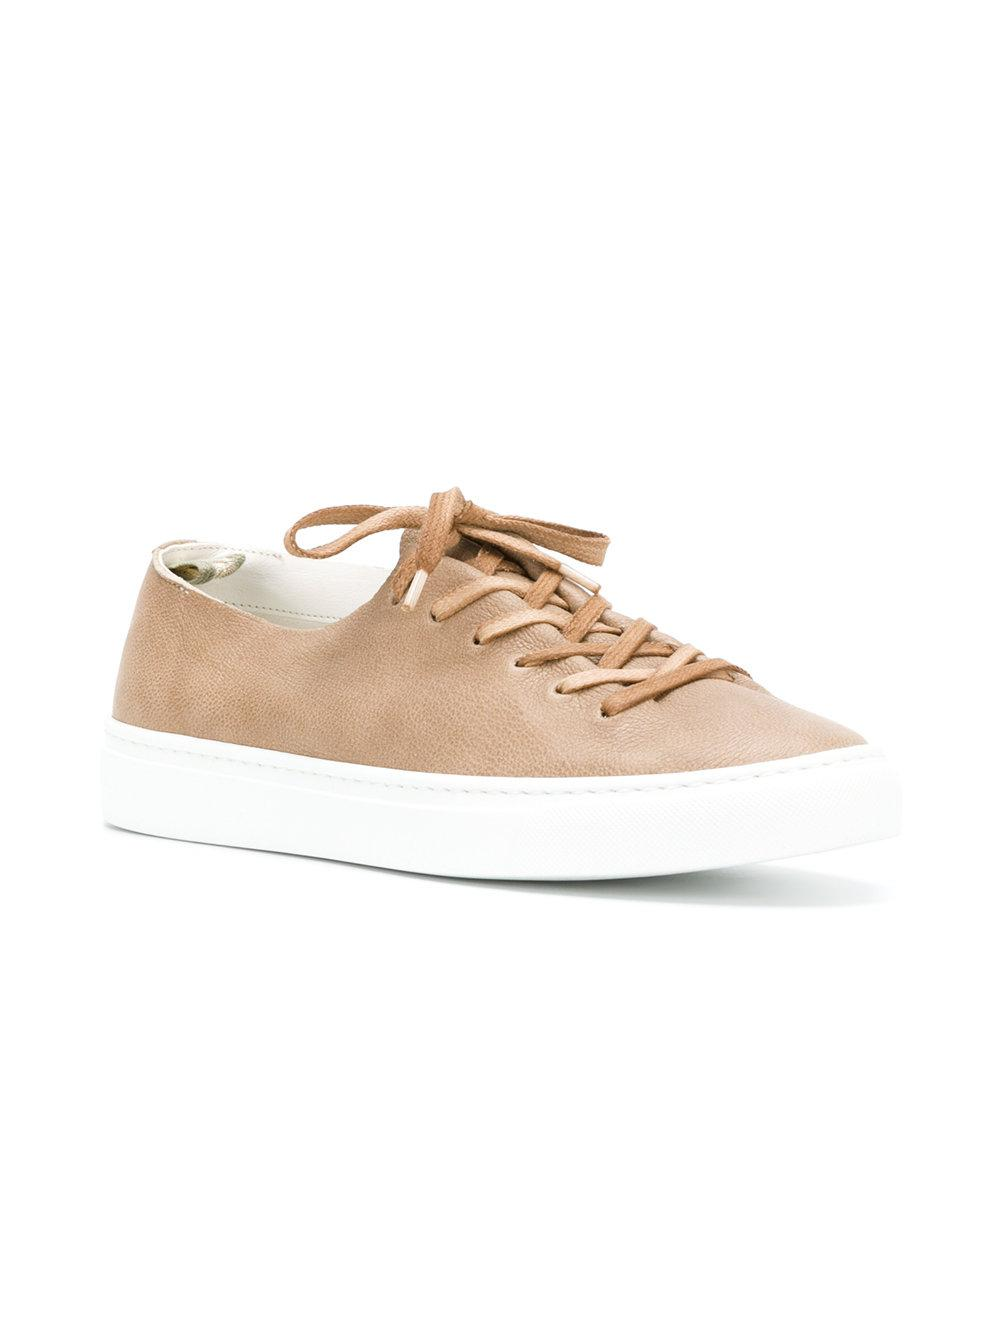 Officine Creative Leather Low Top Sneakers in Brown